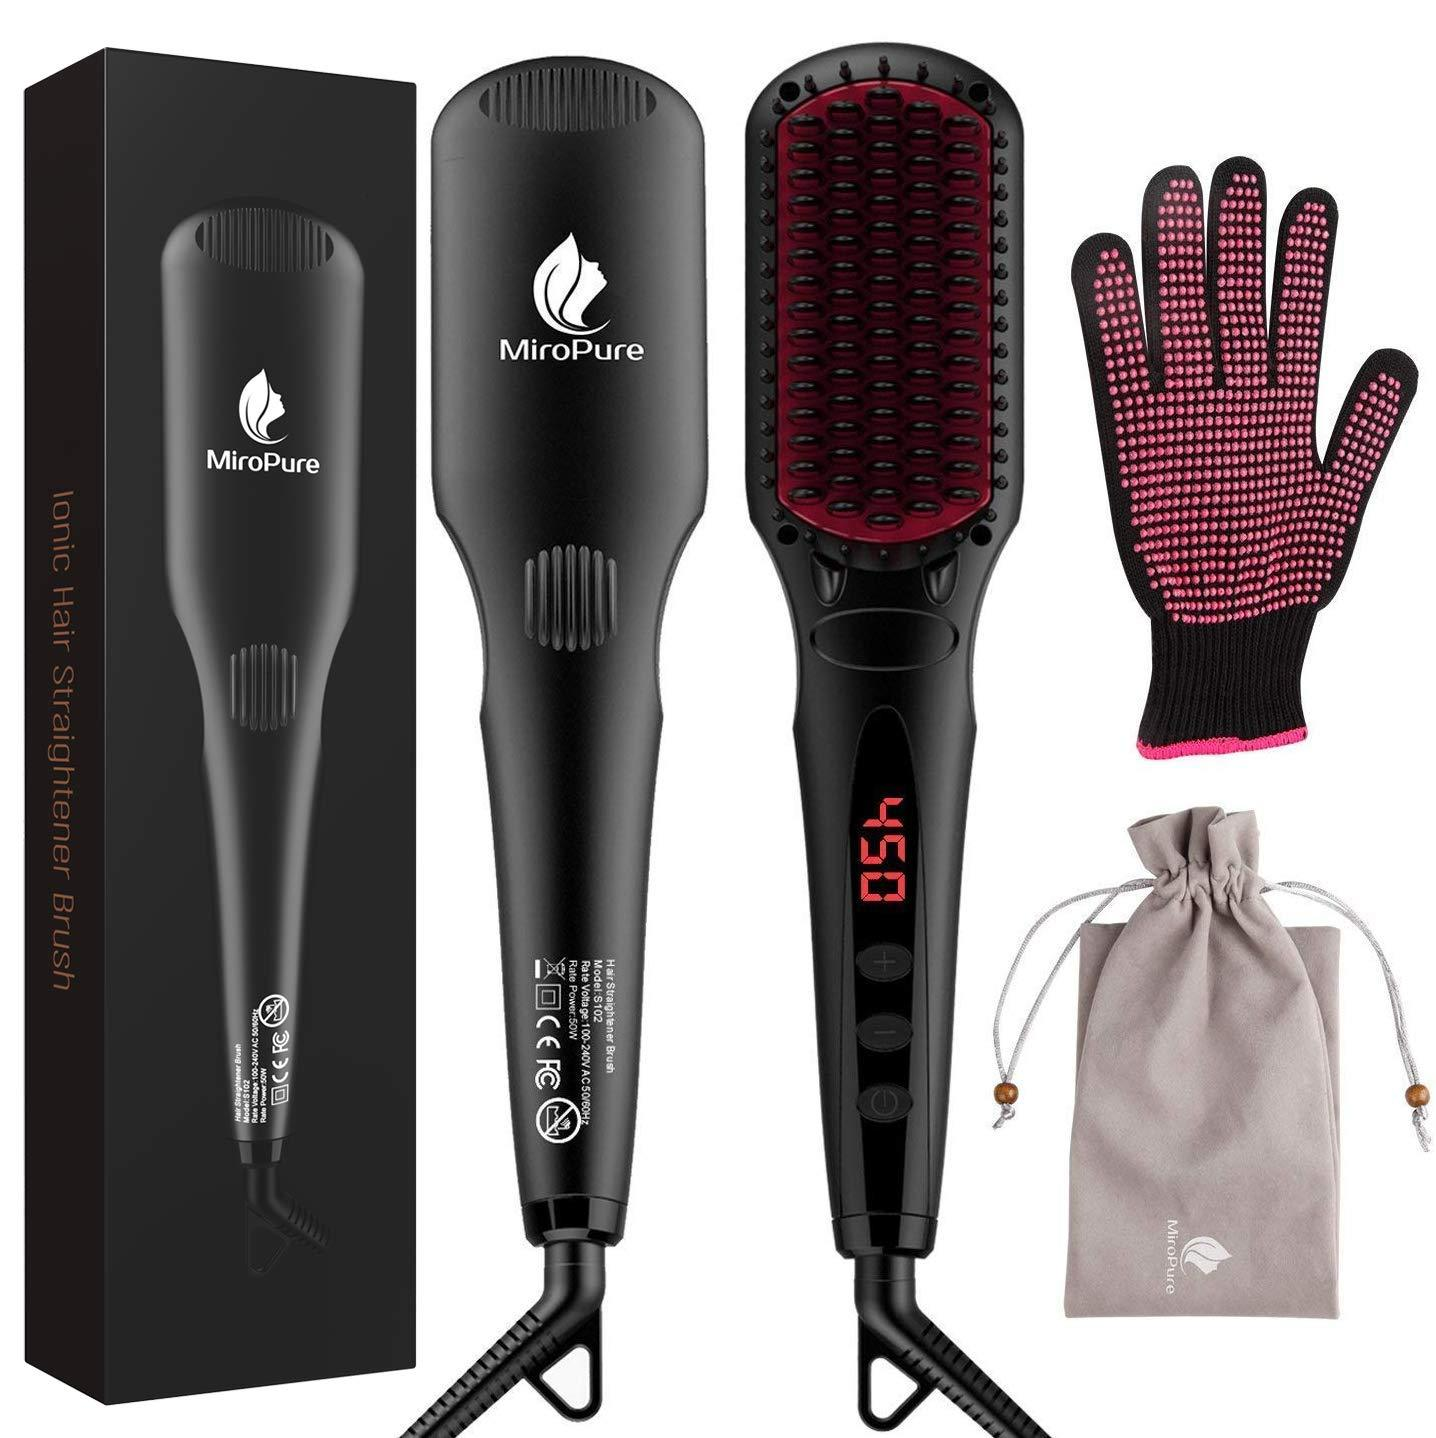 MiroPure S102 Hair Straightener Brush